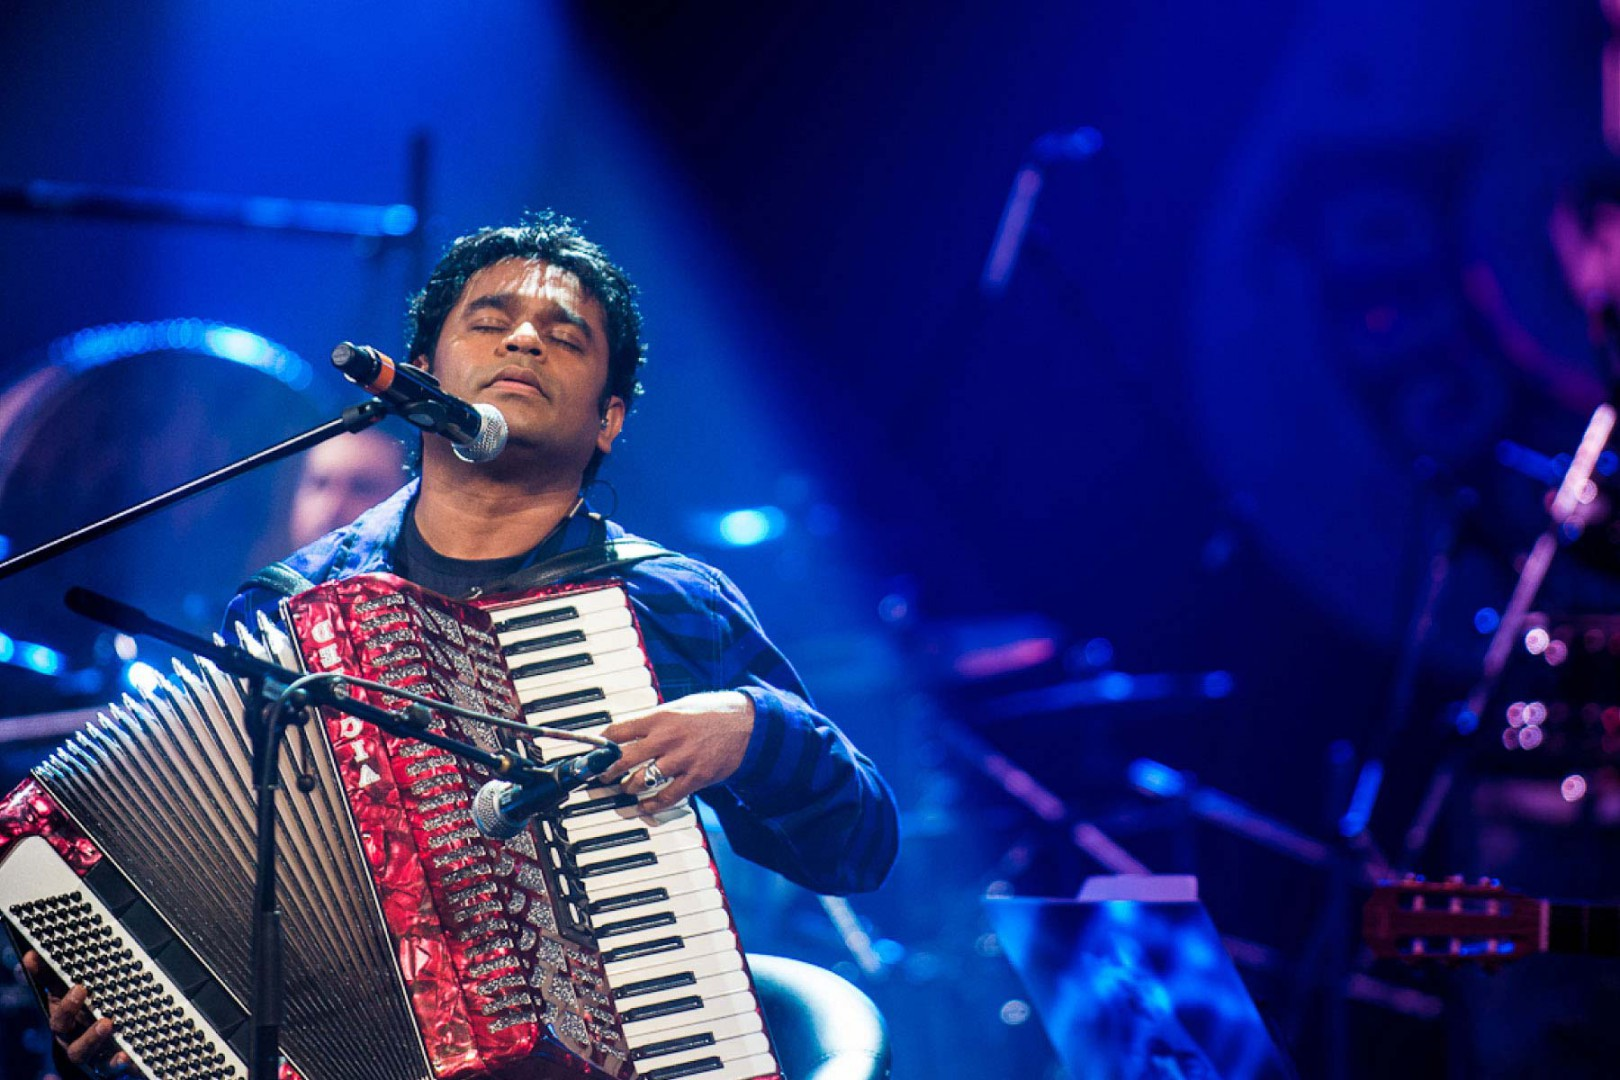 """a.r.rahman: the mozart of madras essay He's been called """"the mozart of madras"""" – and composer a r rahman is a true living legend his 100-plus film scores include indian classics such as lagaan, bombay, roja and dil se, whilst slumdog millionaire, 127 hours and elizabeth: the golden age have brought his irresistible brand of melody to audiences around the world."""